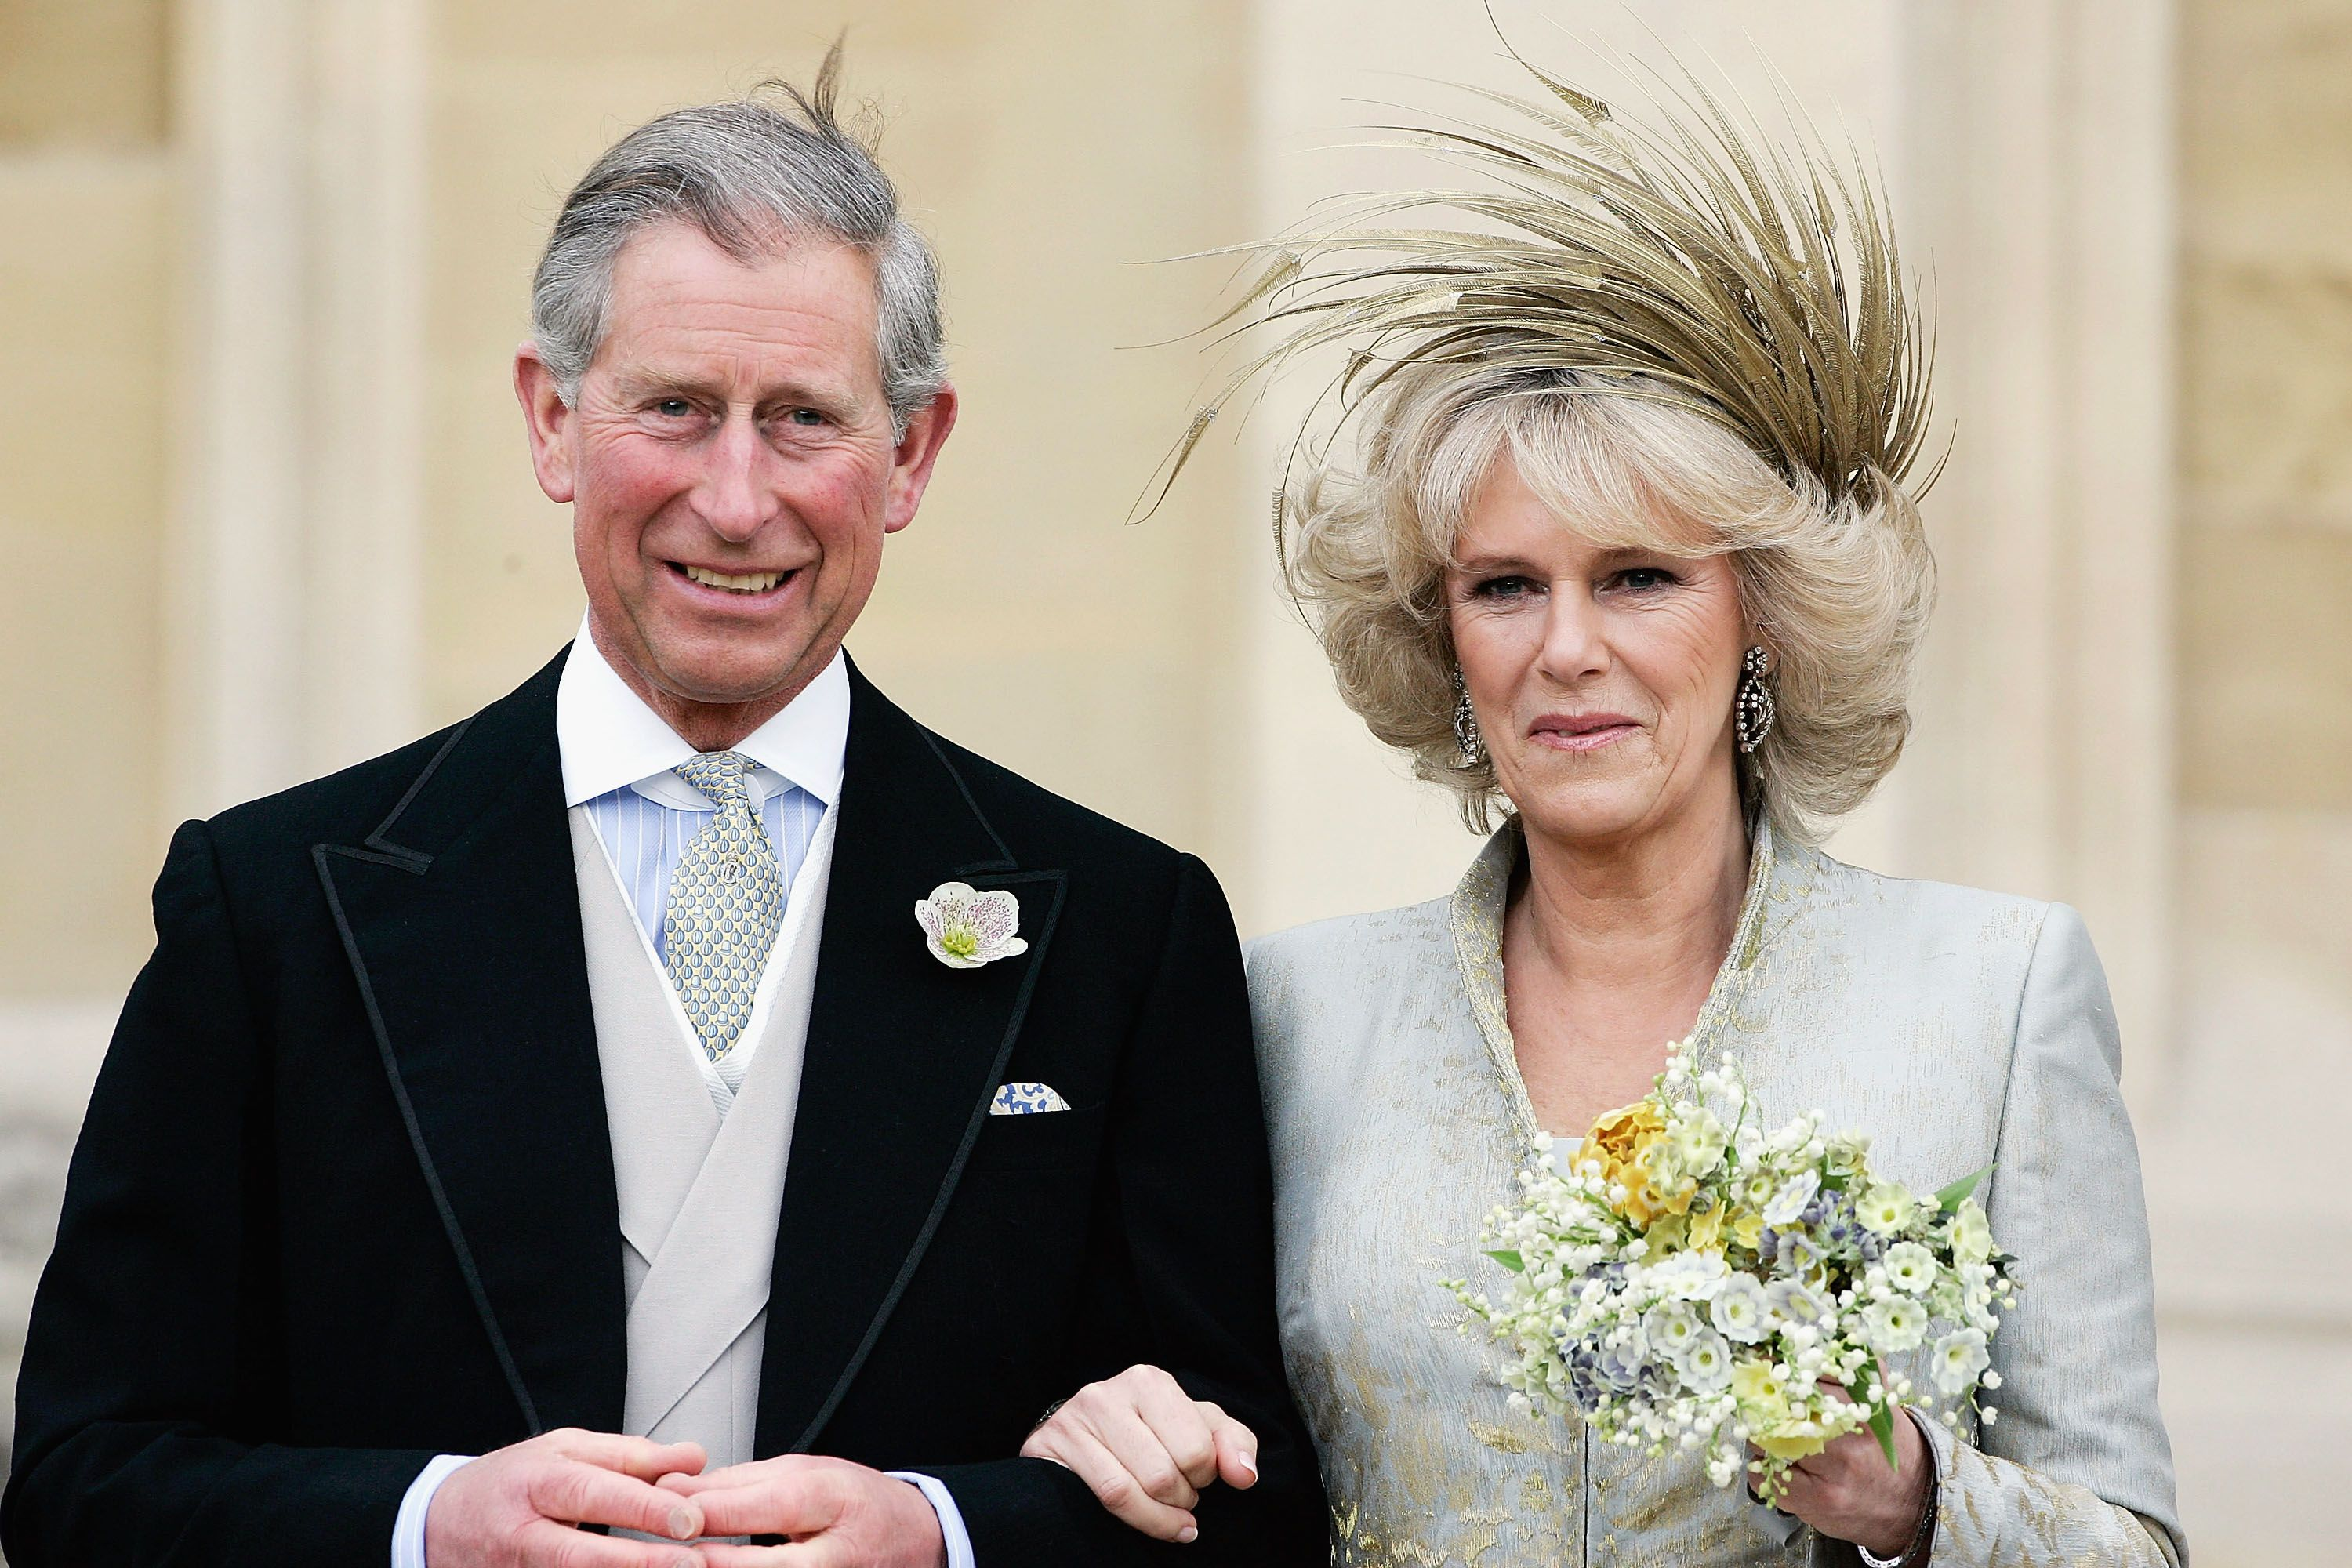 Prince Charles and Duchess Camilla at the Service of Prayer and Dedication blessing their marriage at Windsor Castle on April 9, 2005, in Berkshire, England | Photo: Tim Graham Photo Library/Getty Images